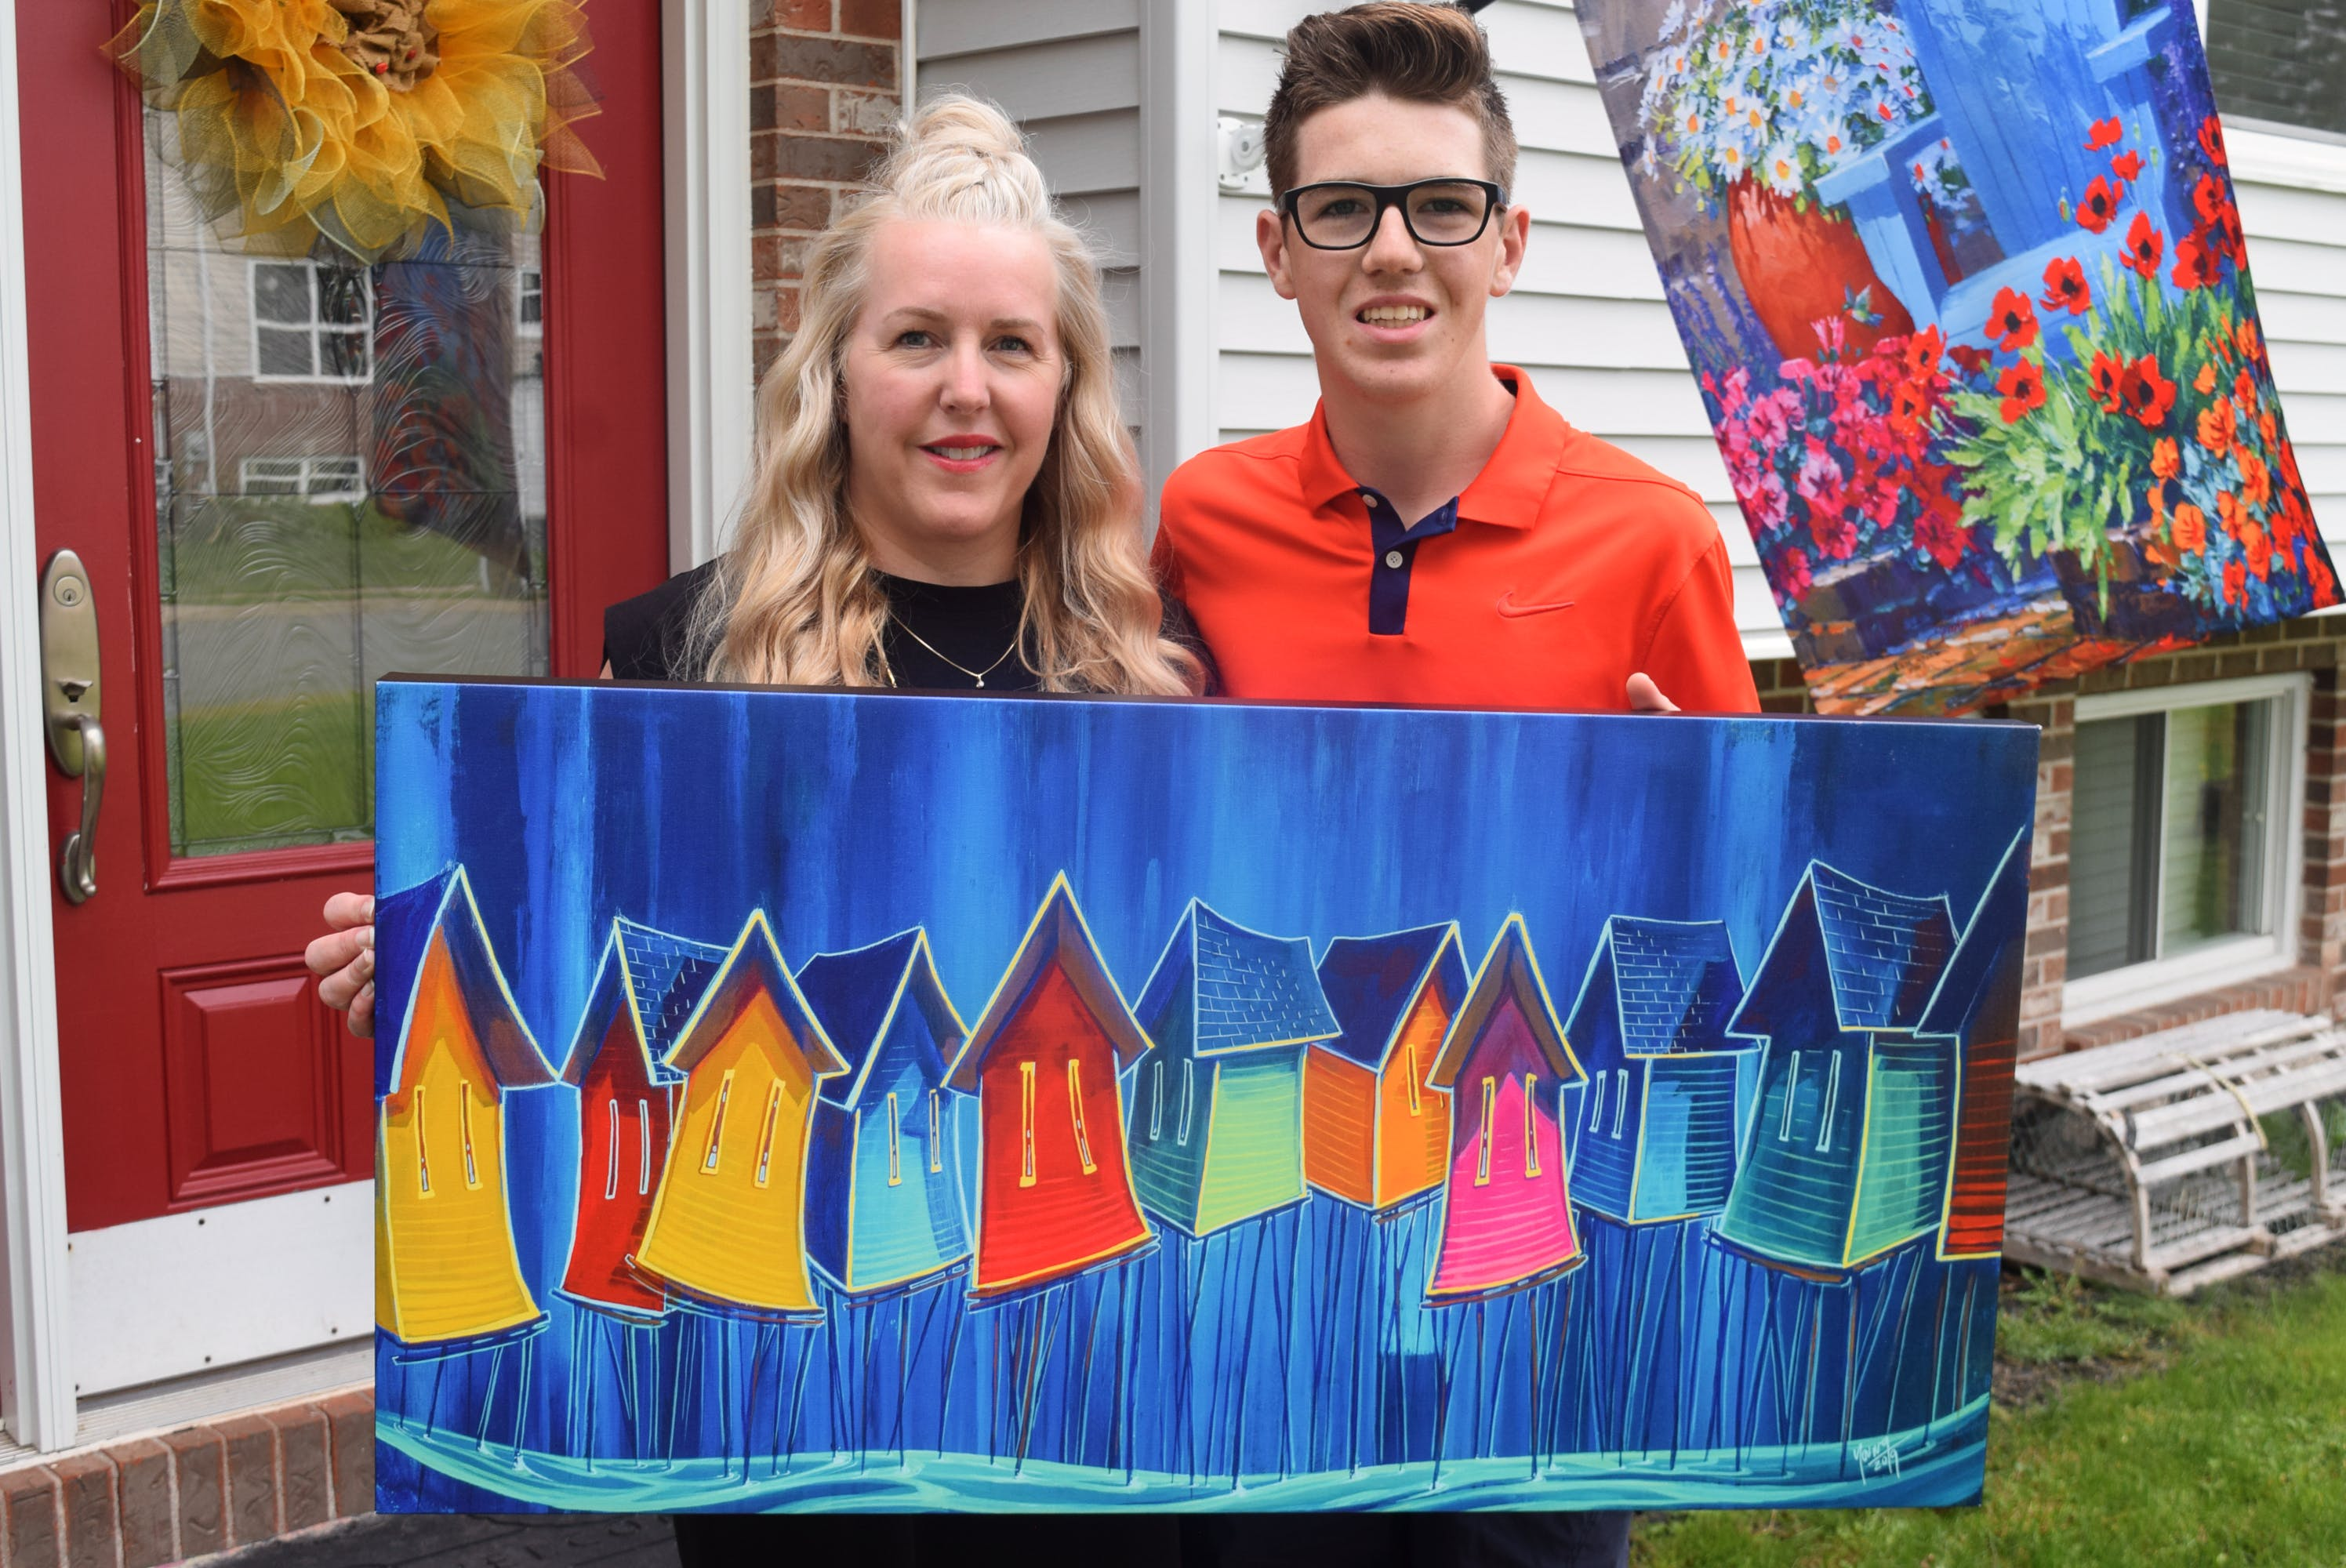 Jax Gaudet and his mother, Lana McMackin, hold up a painting by Adam Young of Young Studios that will be auctioned online for Jax's Make-A-Wish fundraiser. Before this, he has an even bigger fundraiser - VIP weekend passes for County Rocks the Hub and Rock the Hub festivals.